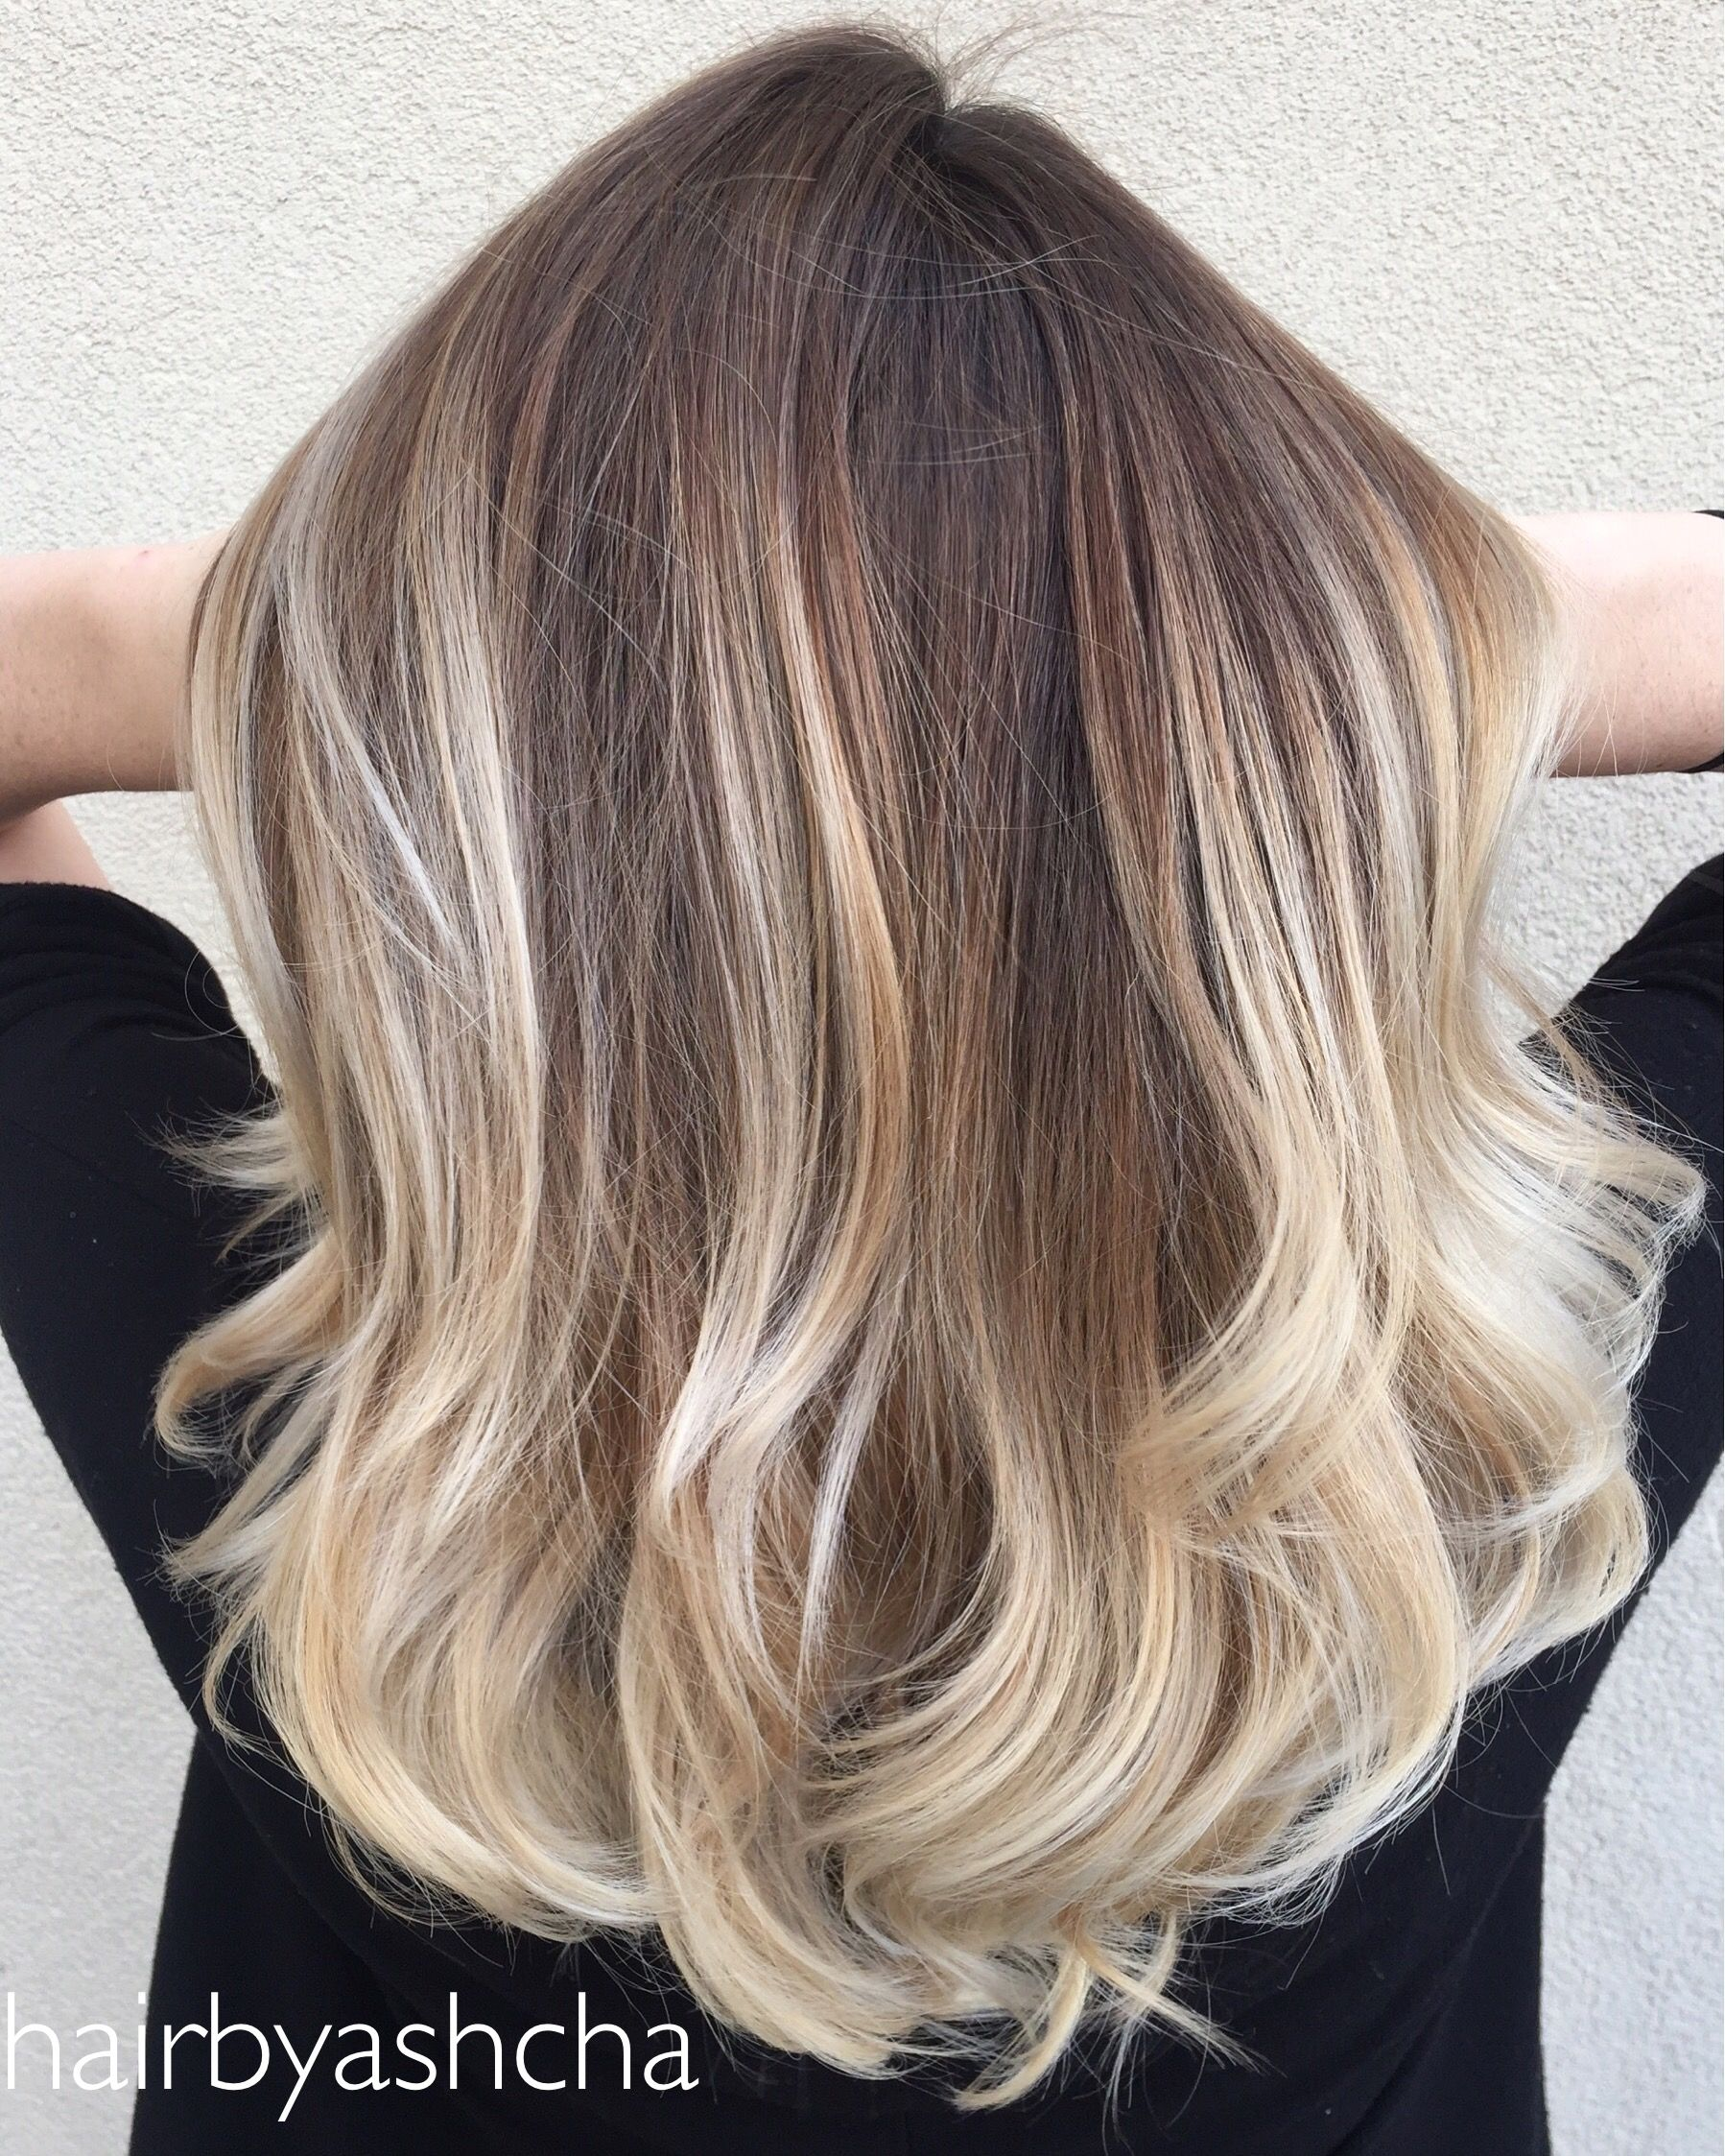 Blonde Hairstyles With Highlights | Hair color balayage ...